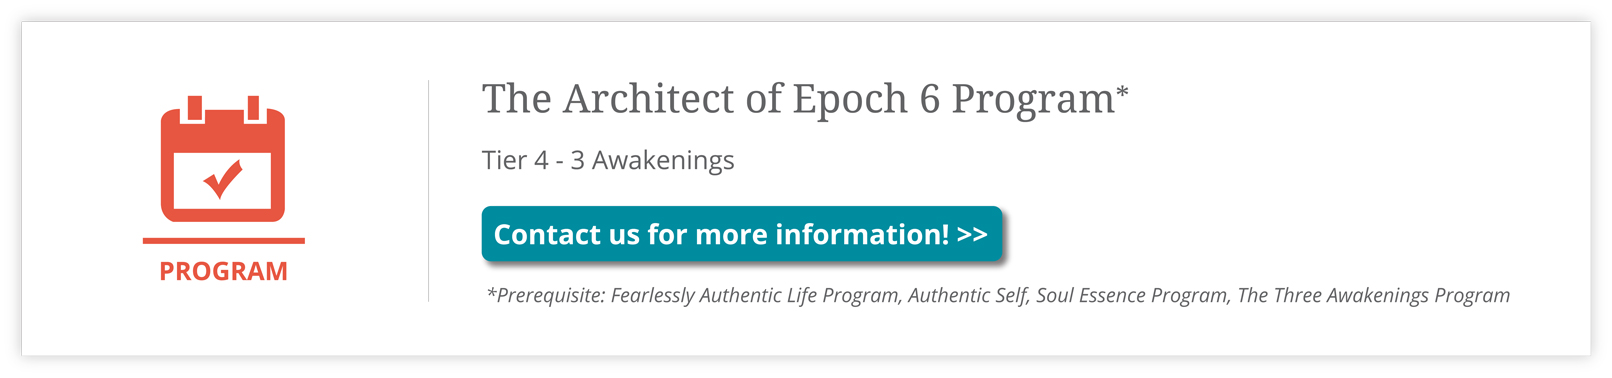 The-Architect-of-Epoch-6-Program